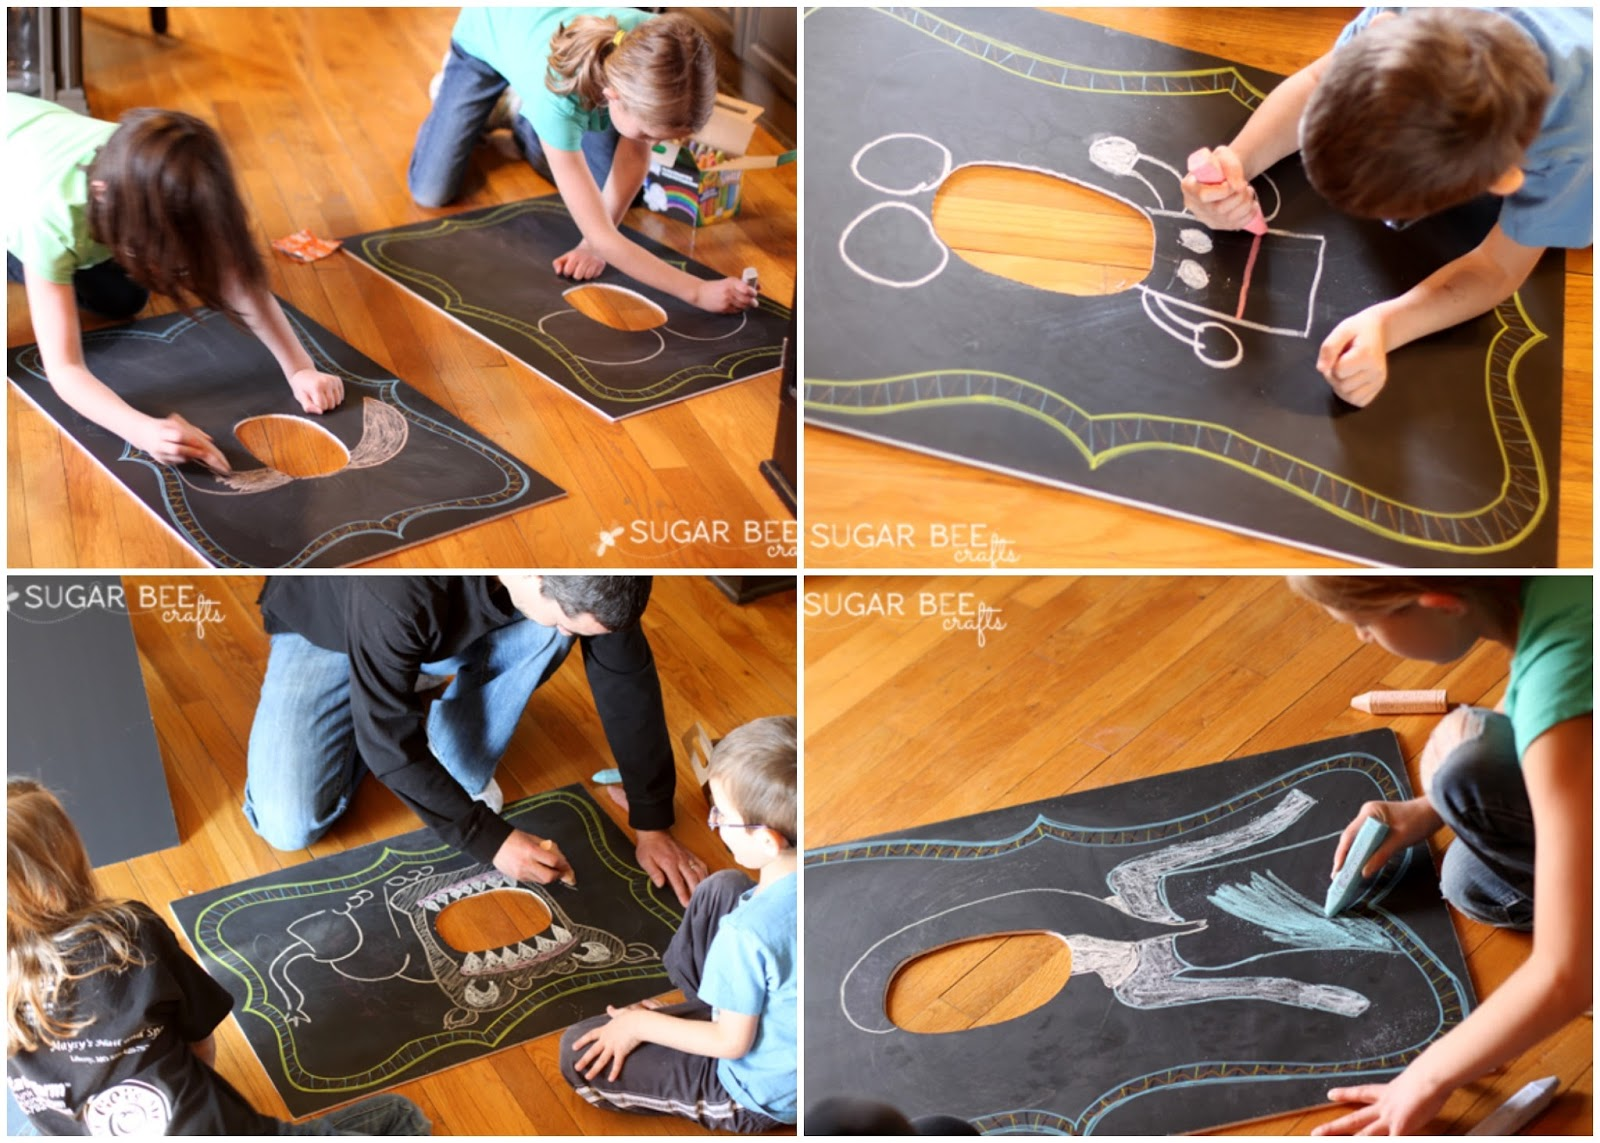 drawing+on+chalkboard+foam+board.jpg